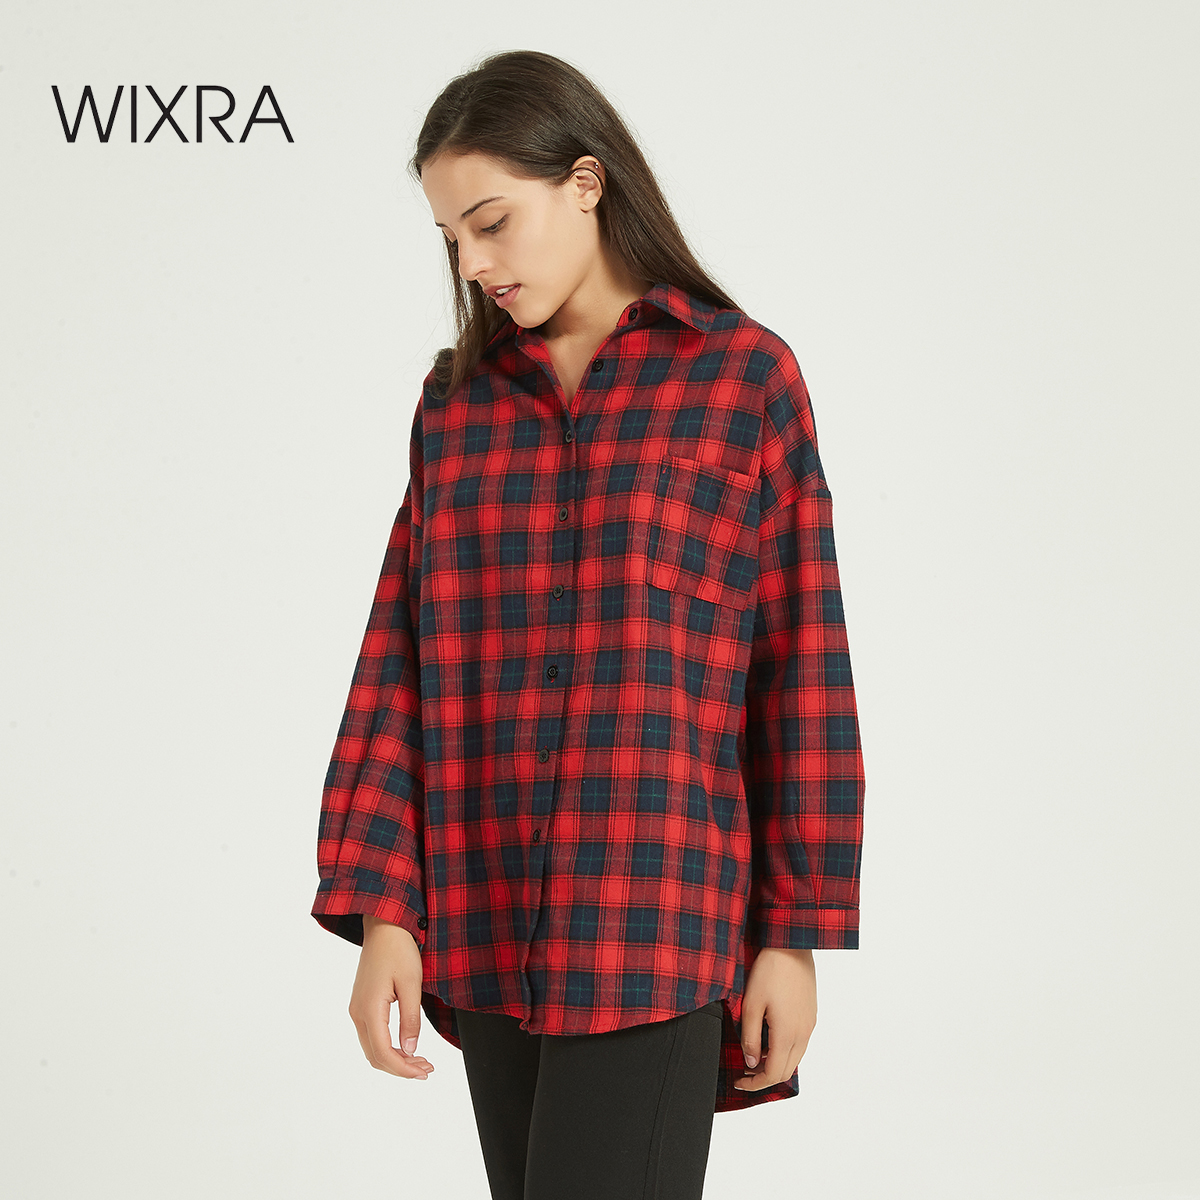 Wixra New Classic Casual Lapel Blouses Women Plaid Shirt Loose Checks Shirts Female Long Sleeve Tops Blouse Spring Autumn